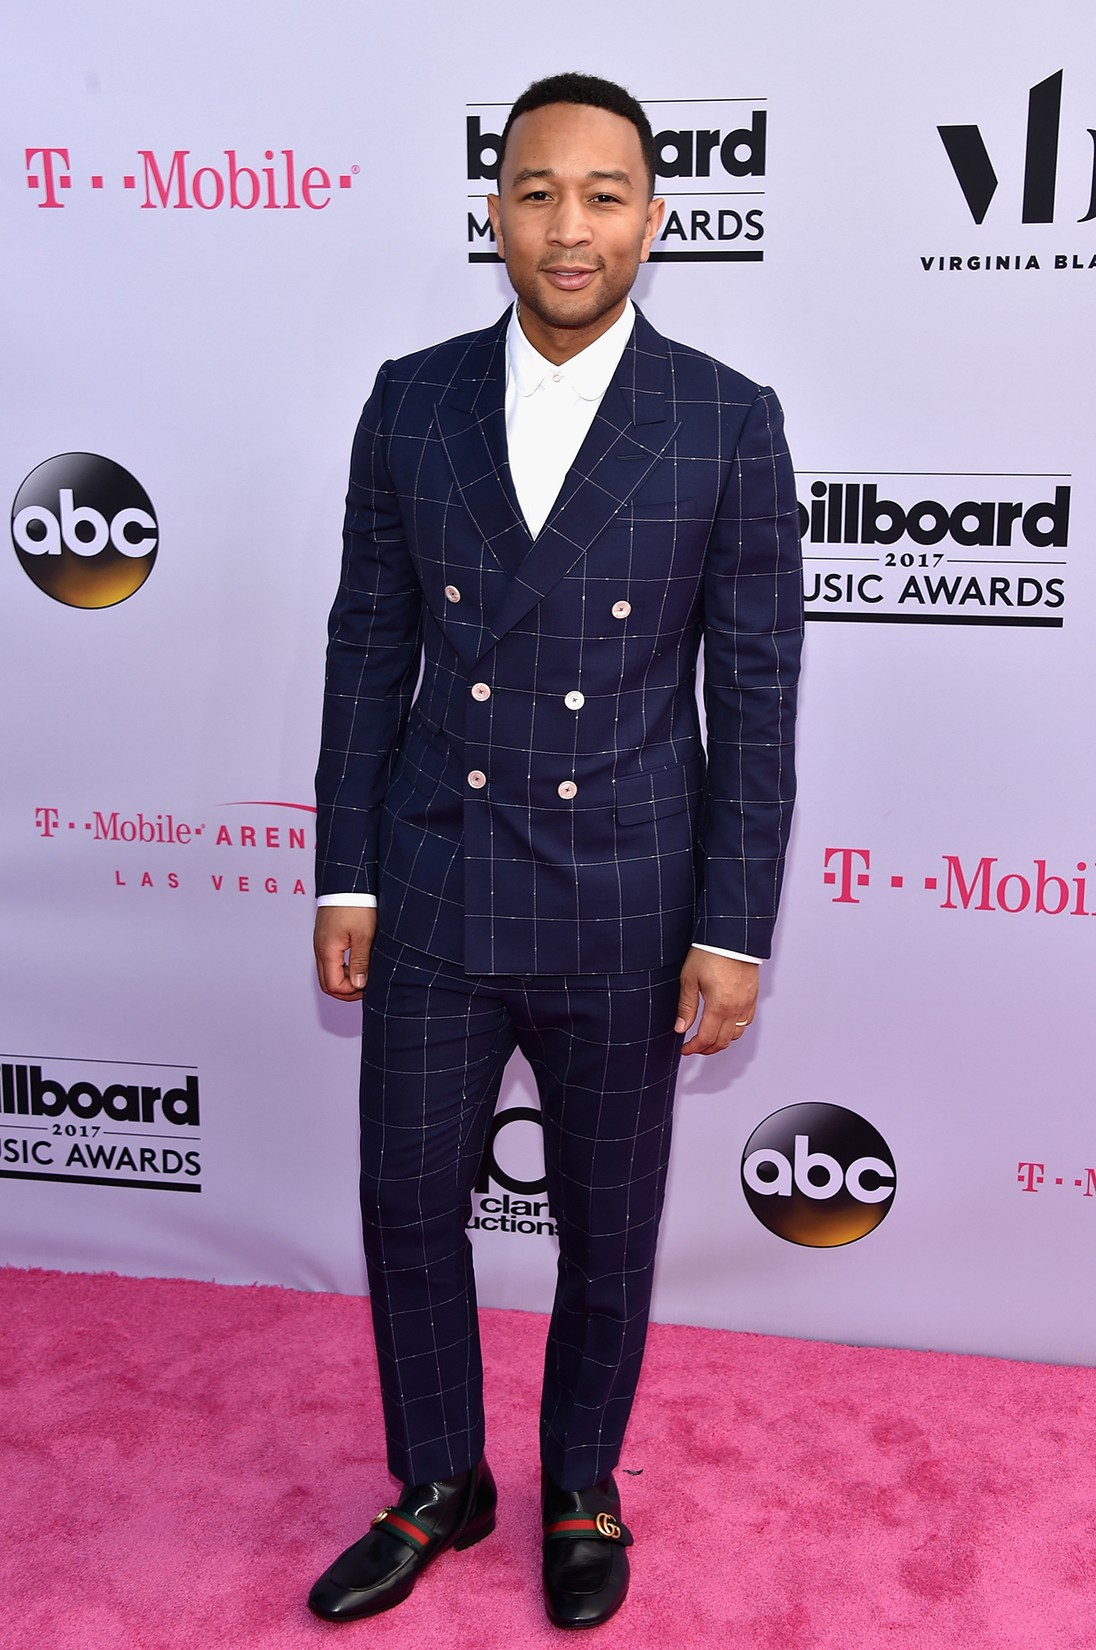 John Legend attends the 2017 Billboard Music Awards at T-Mobile Arena on May 21, 2017 in Las Vegas.